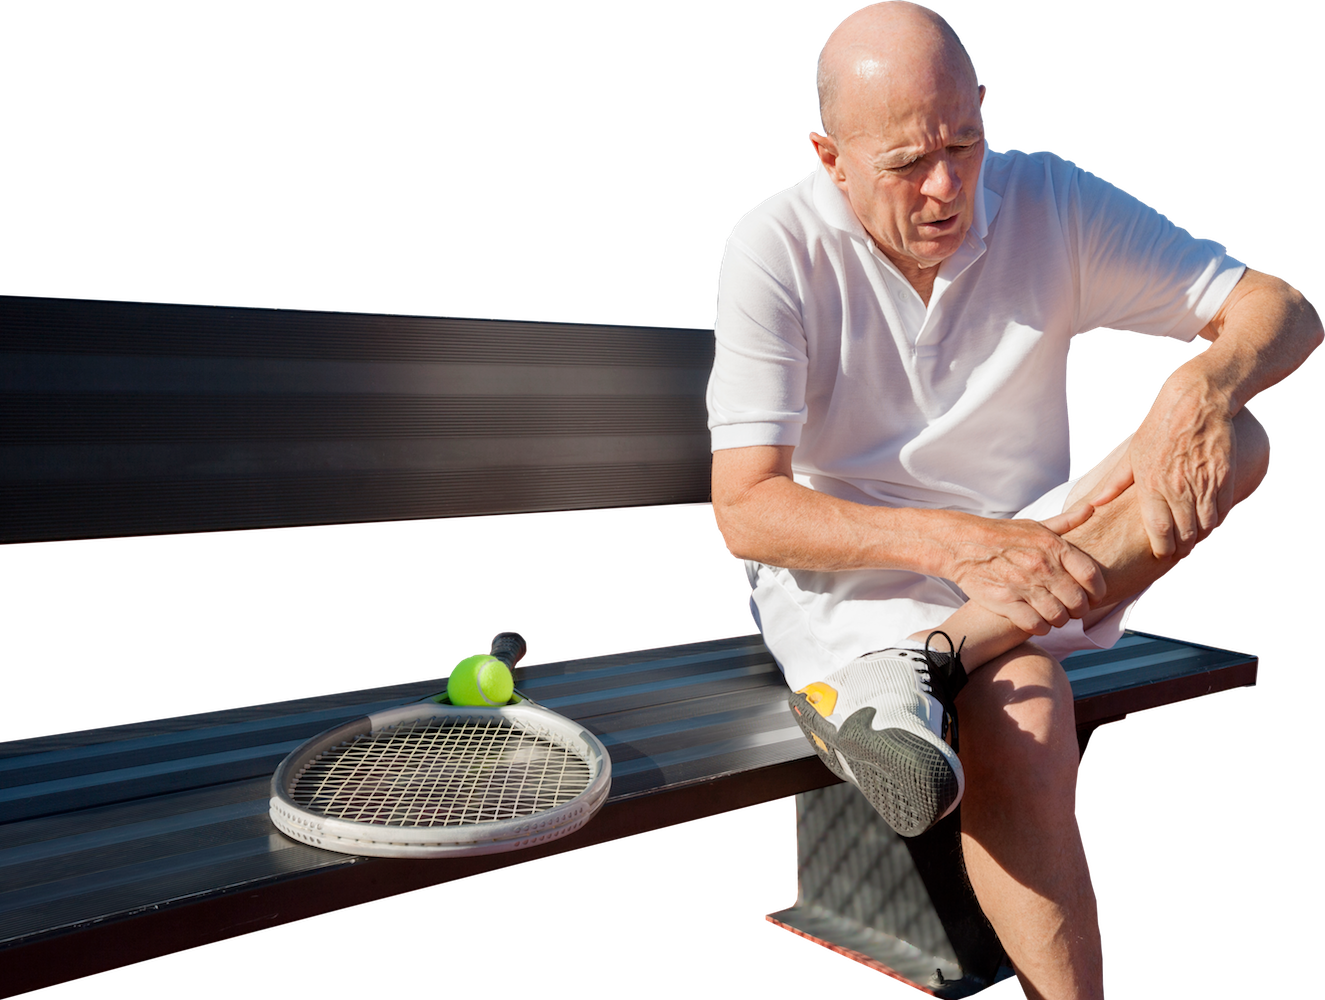 IMAGE STRETCHING FOR TENNIS PLAYERS